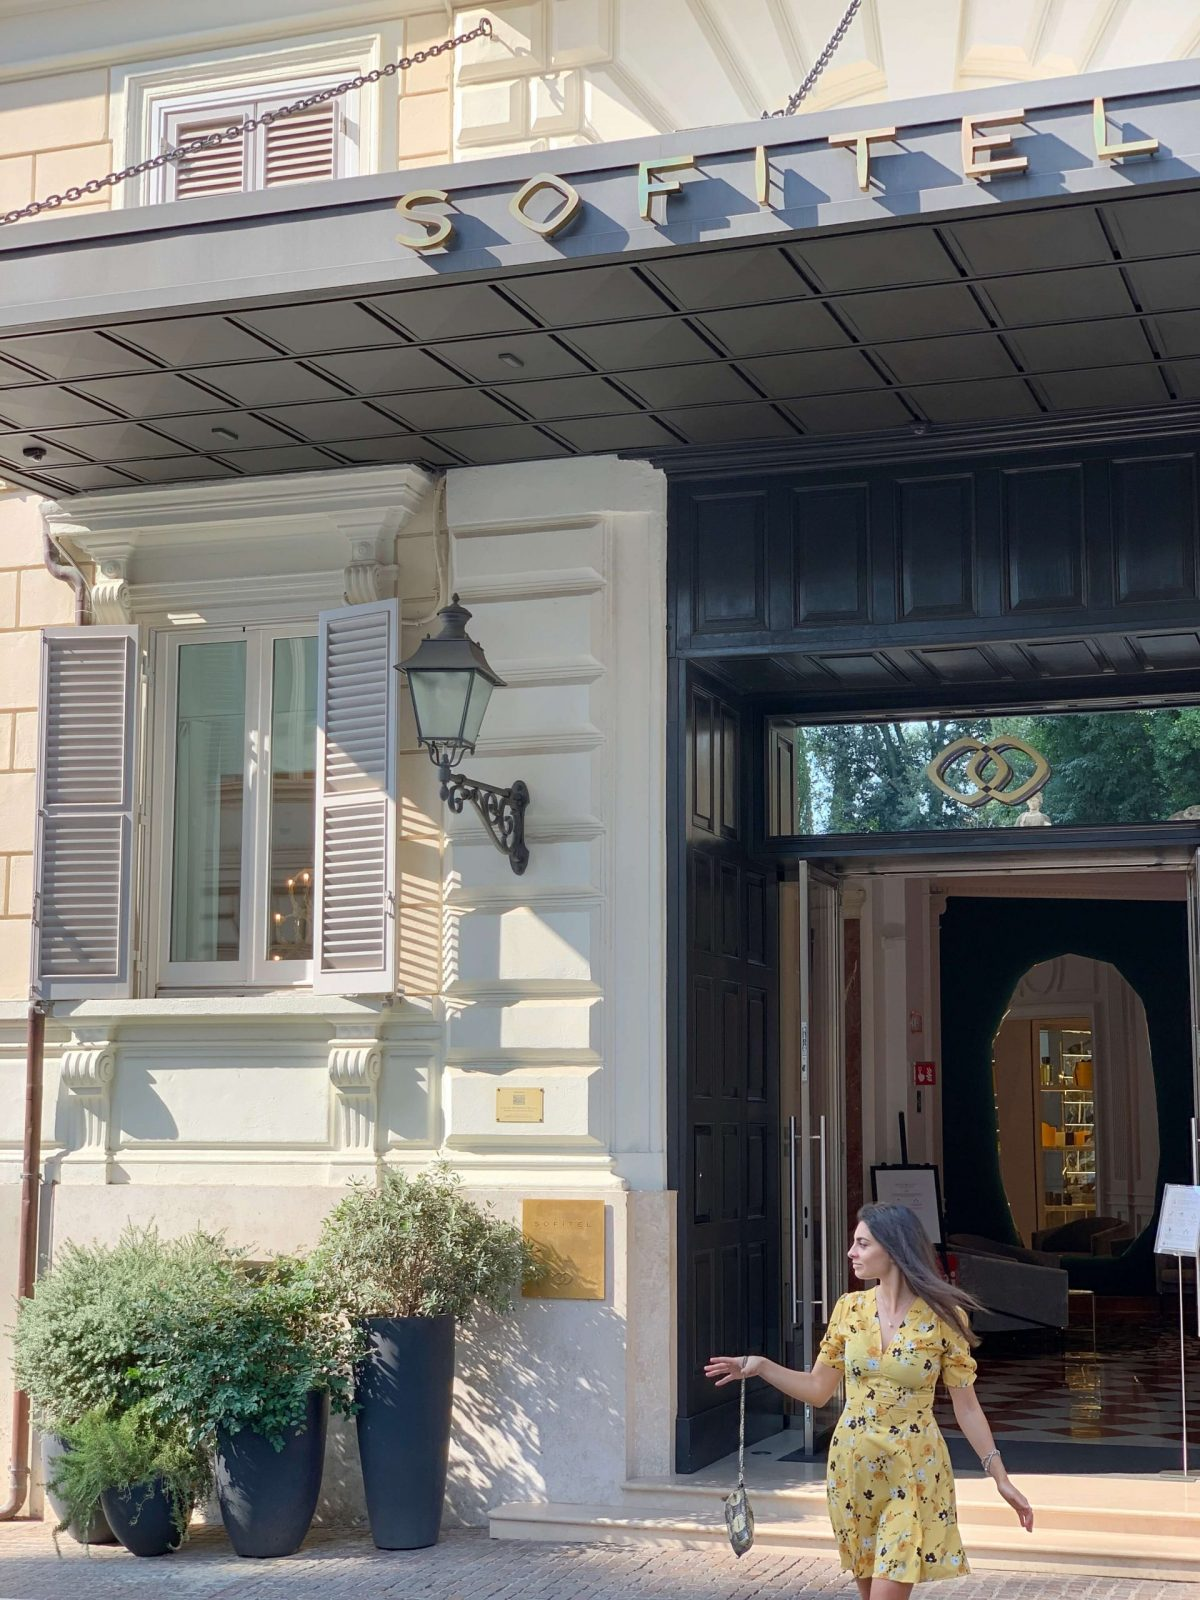 My Roman staycation at the Sofitel Villa Borghese Rome: a luxury hotel in a strategic location